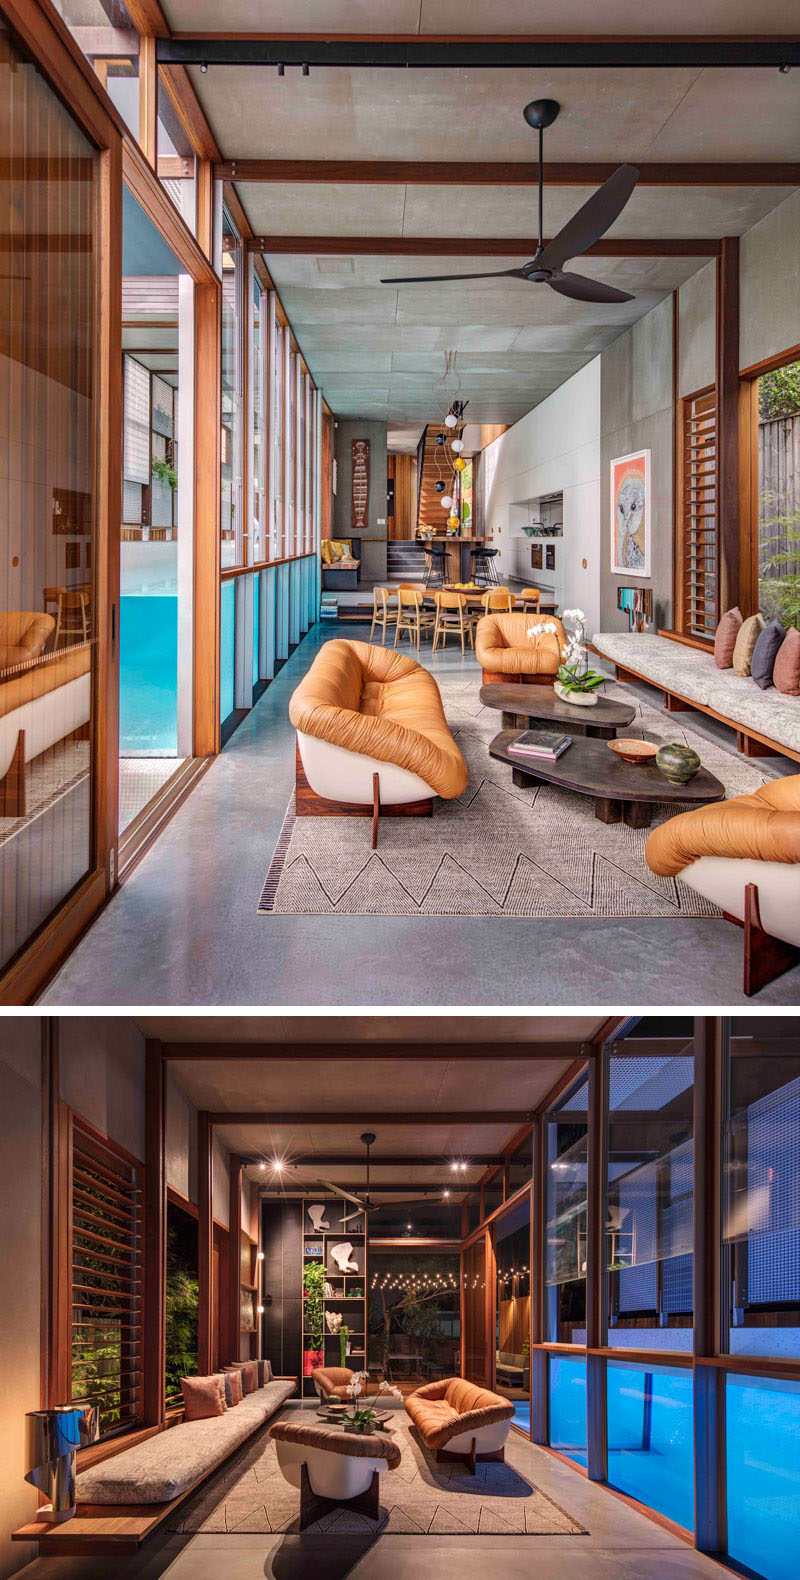 In this living room, there's a large wooden bench that runs the length of the space and additional seating makes sure there's plenty of room for entertaining. The living room also opens up to an outdoor living space and kitchen with a bbq and pizza oven.